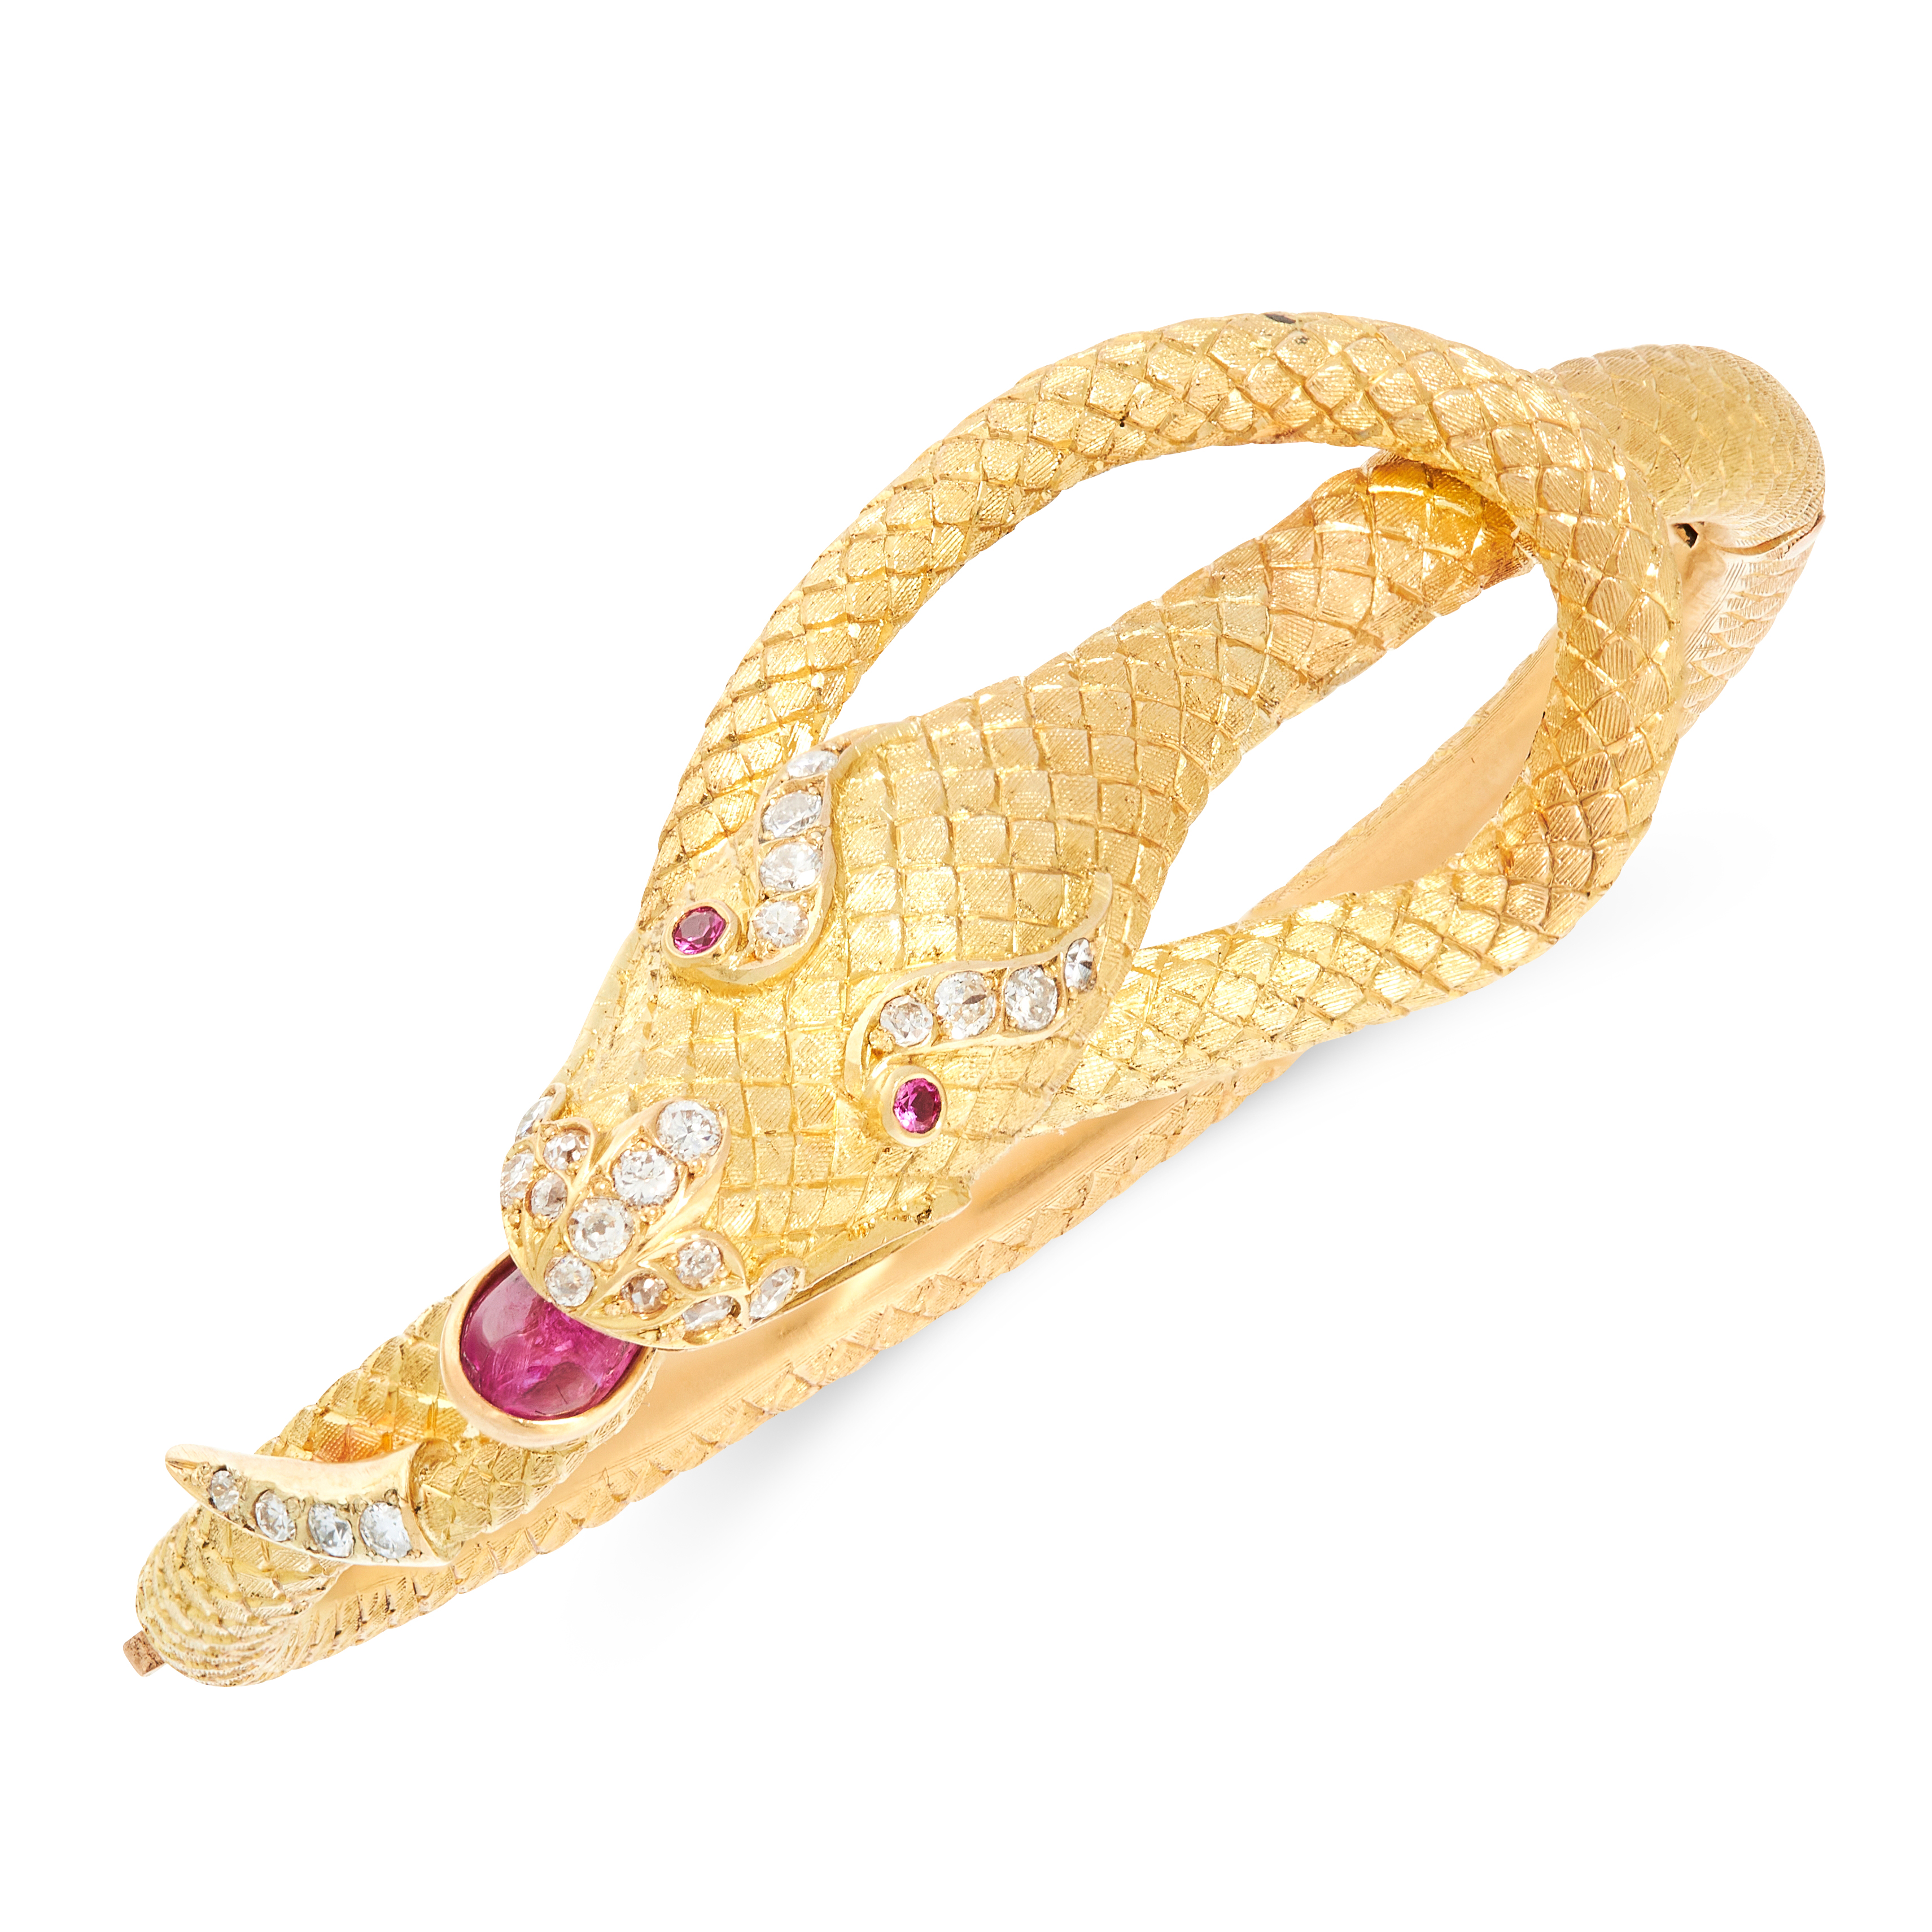 A RUBY AND DIAMOND SNAKE BANGLE in high carat yellow gold, designed as the body of a snake, coiled